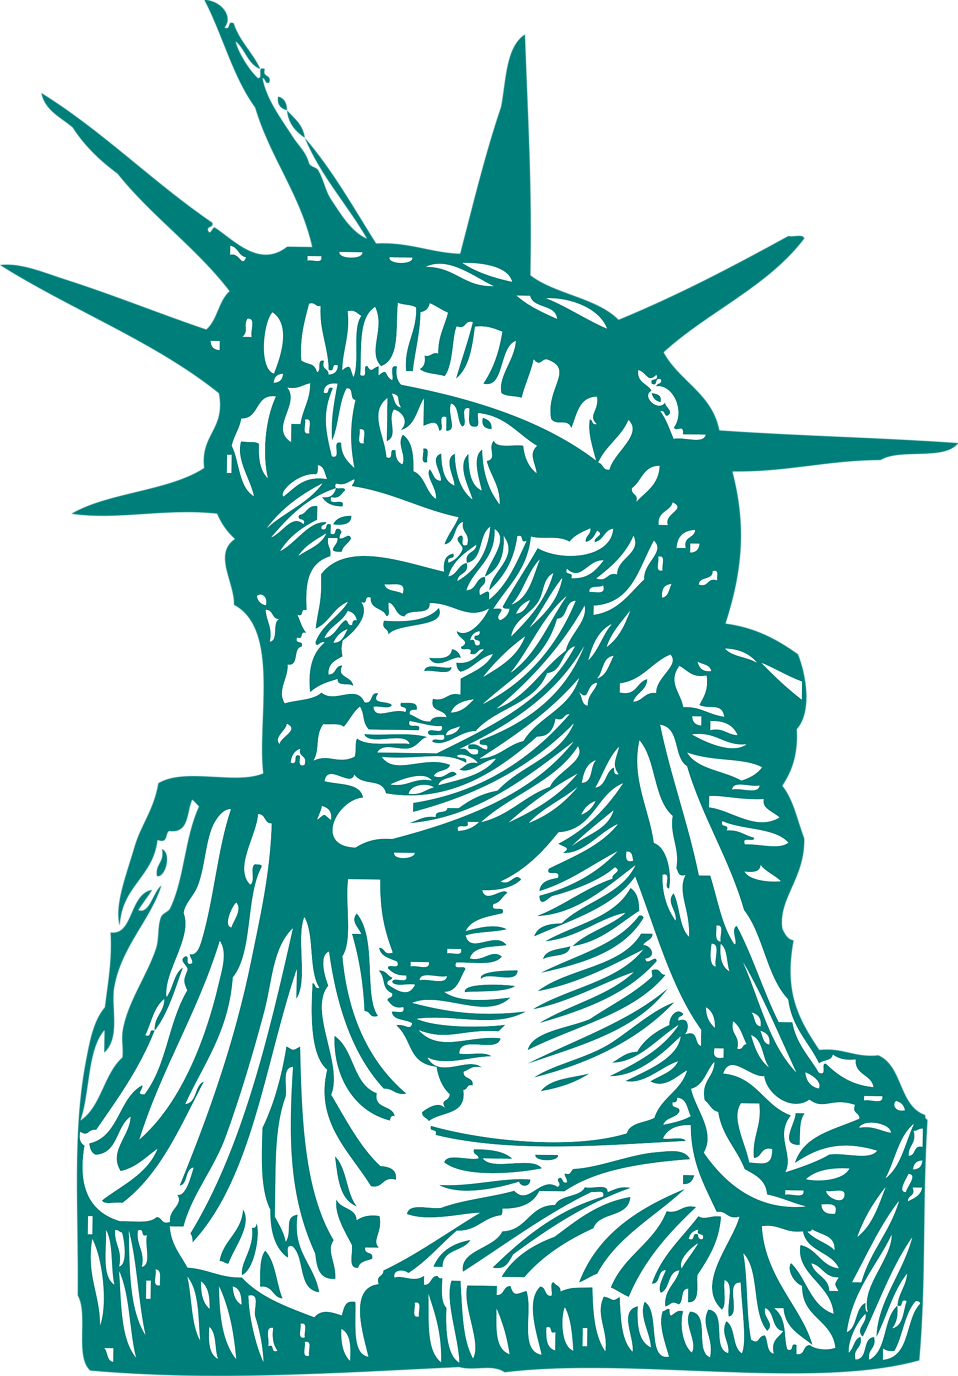 Statue of liberty illustration png. Free stock photo the